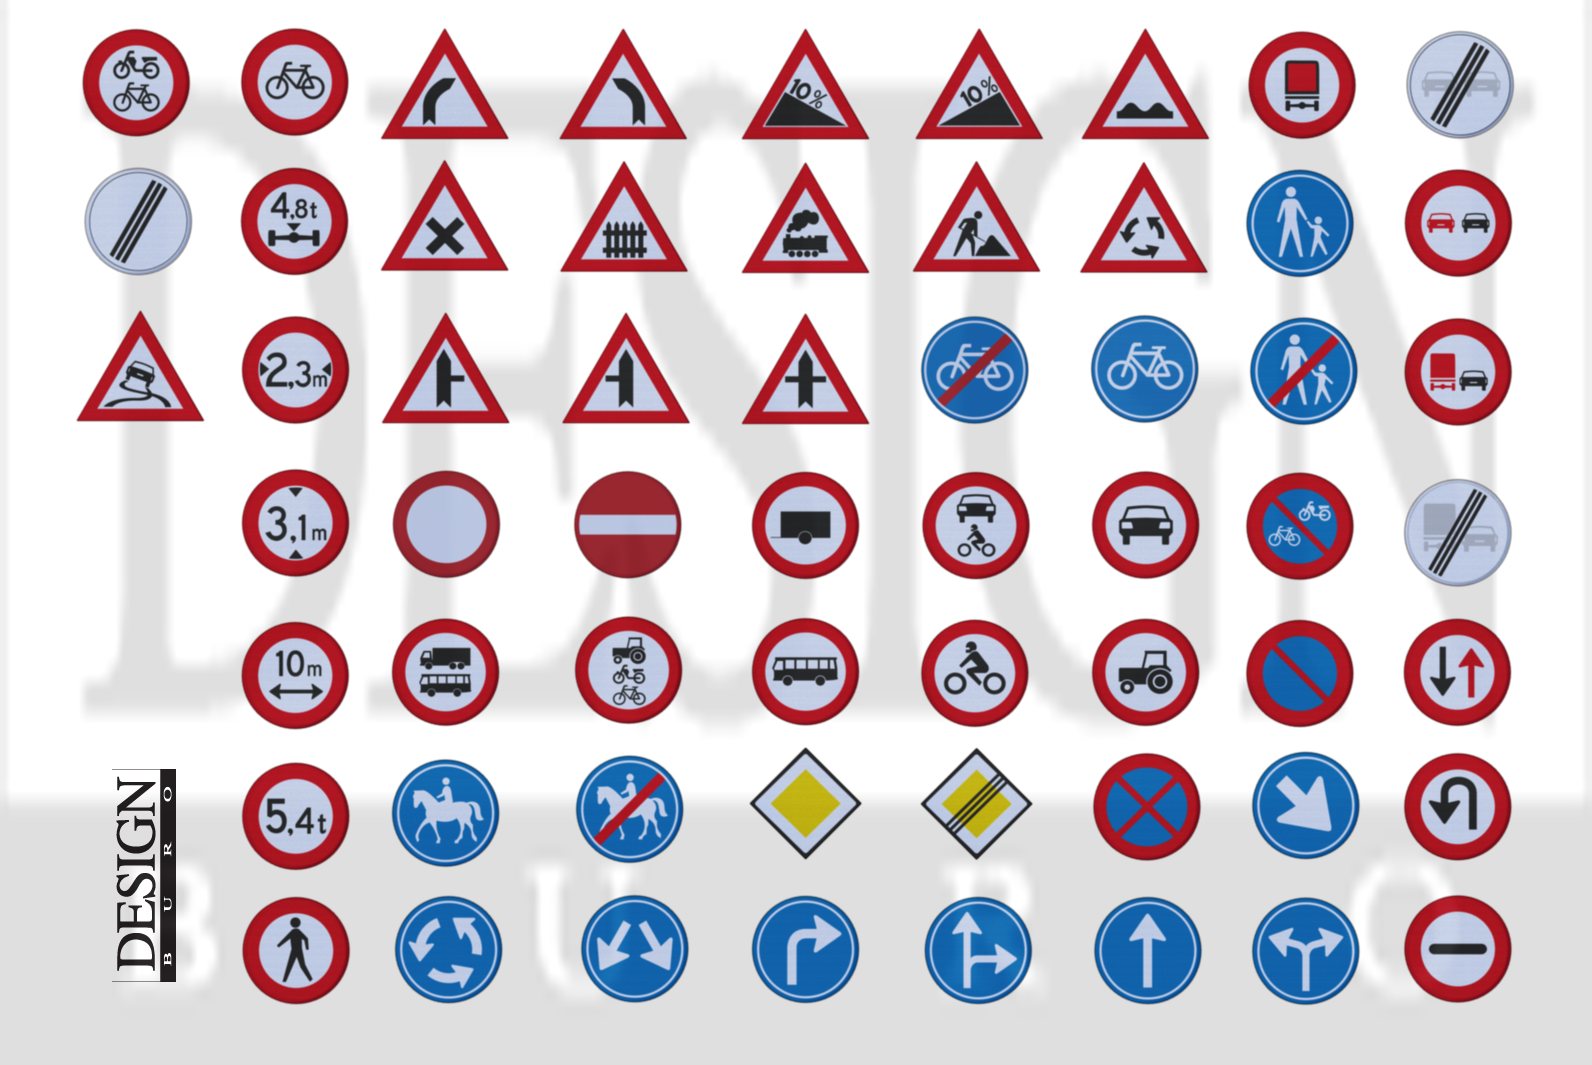 HQ Traffic signs